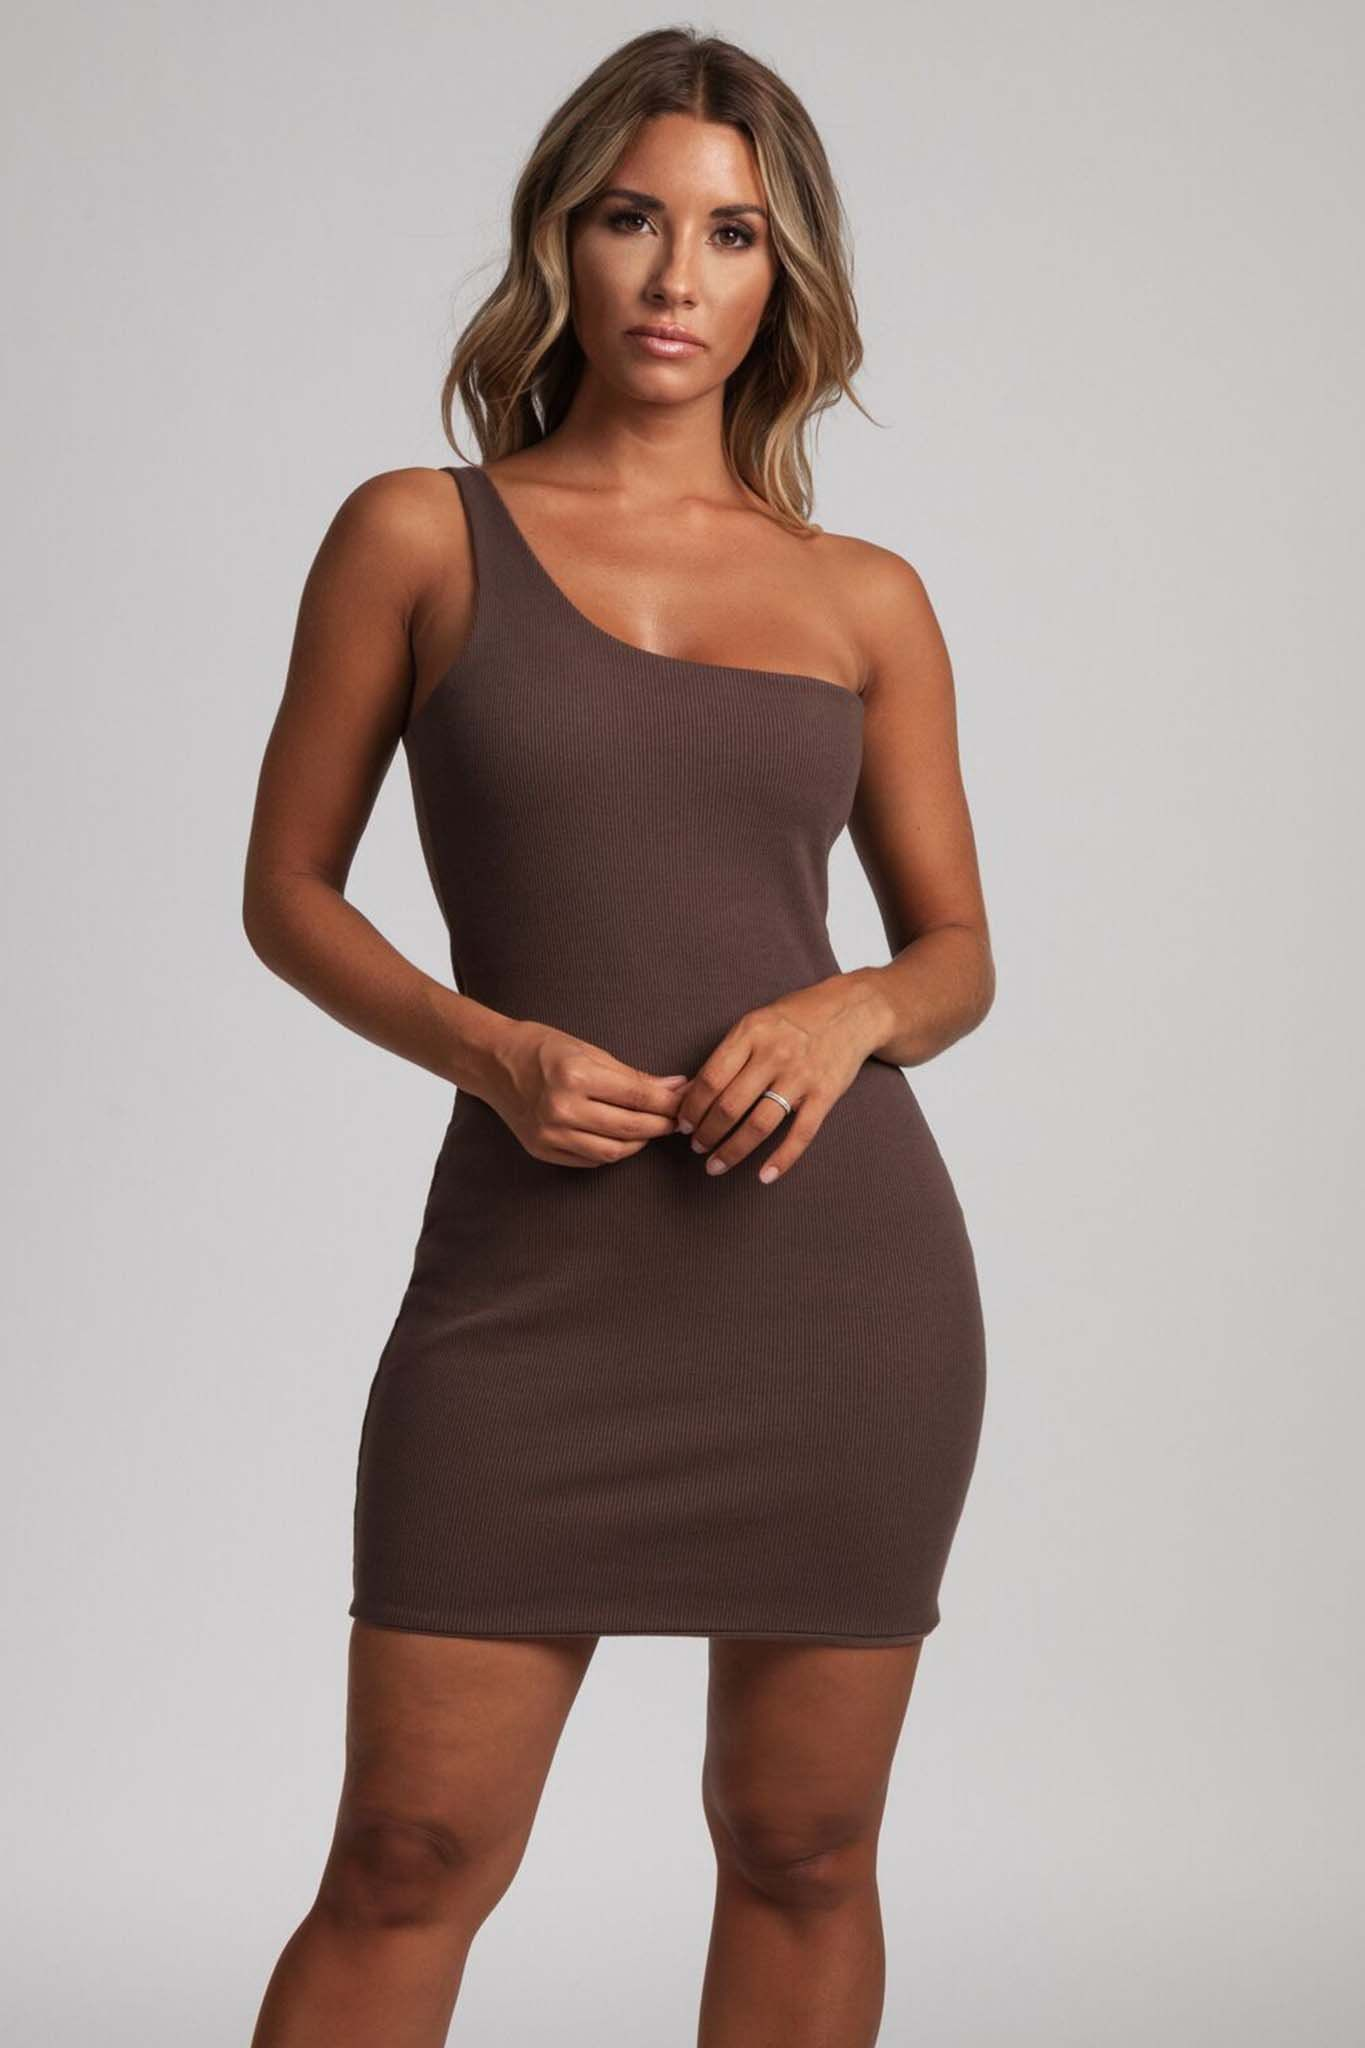 2a856d7c1d93 Scarlett One-Shoulder Bodycon Rib Mini Dress - Chocolate - MESHKI